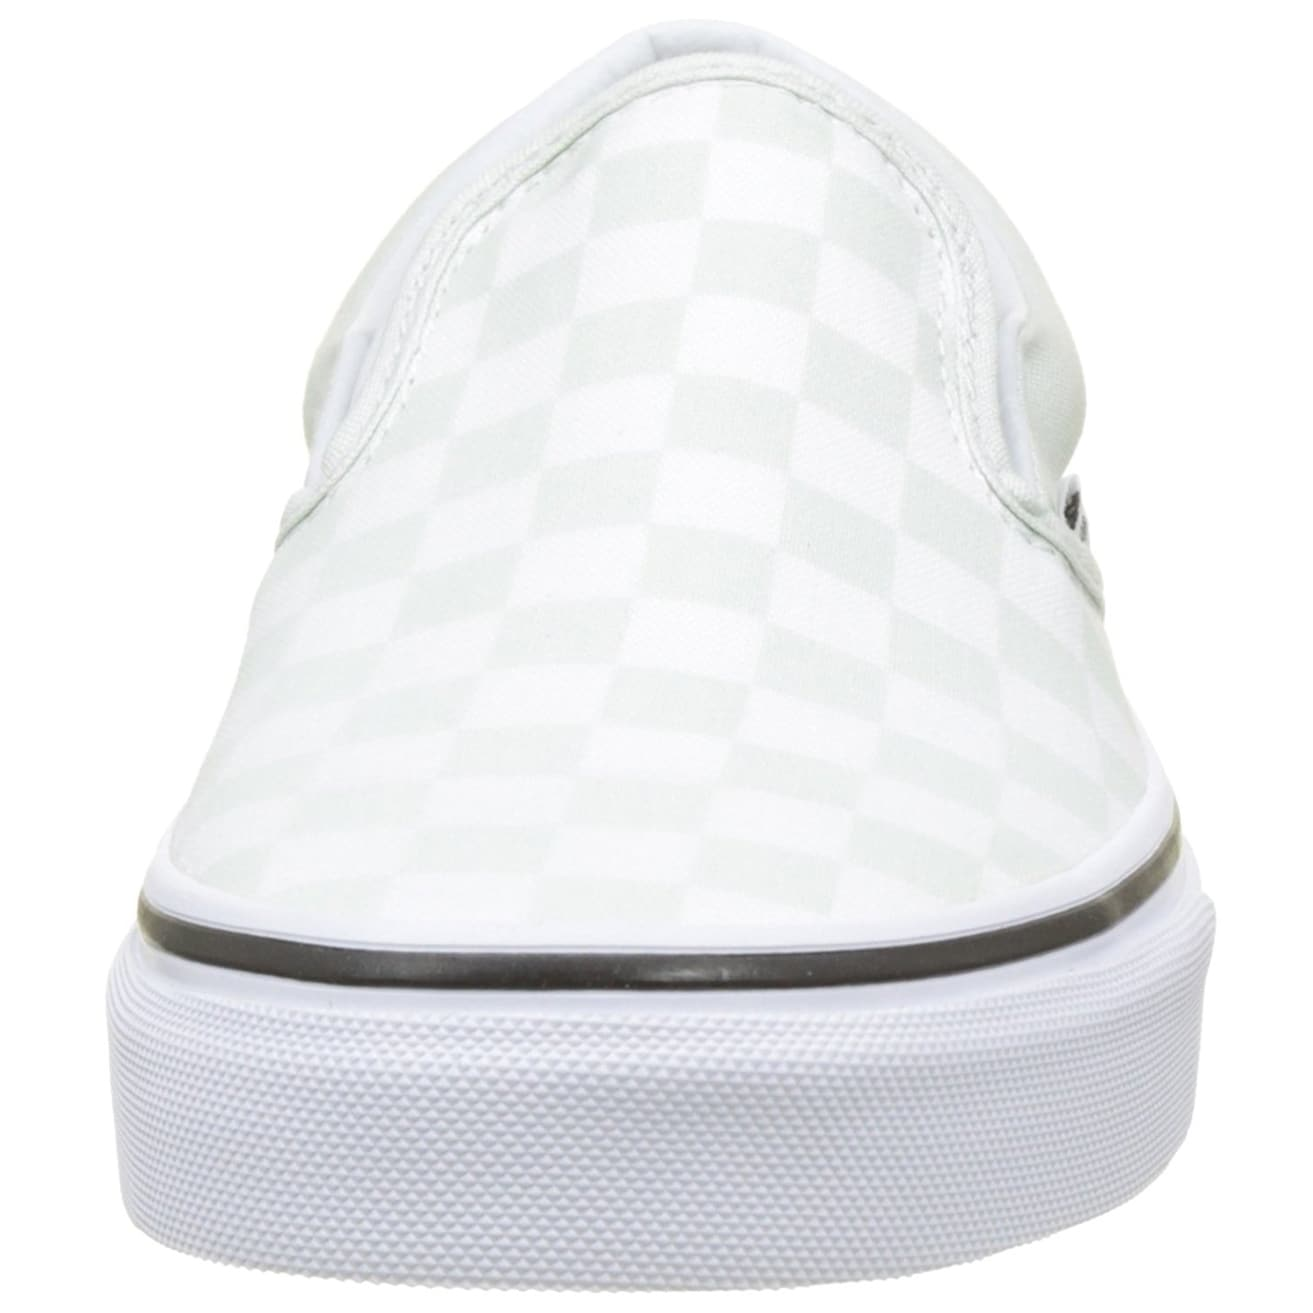 96ad3347ae7f Shop Vans Unisex Classic Slip-On (Perf Leather) Skate Shoe - 8 women   6.5  men m us - Free Shipping On Orders Over  45 - Overstock - 22089383